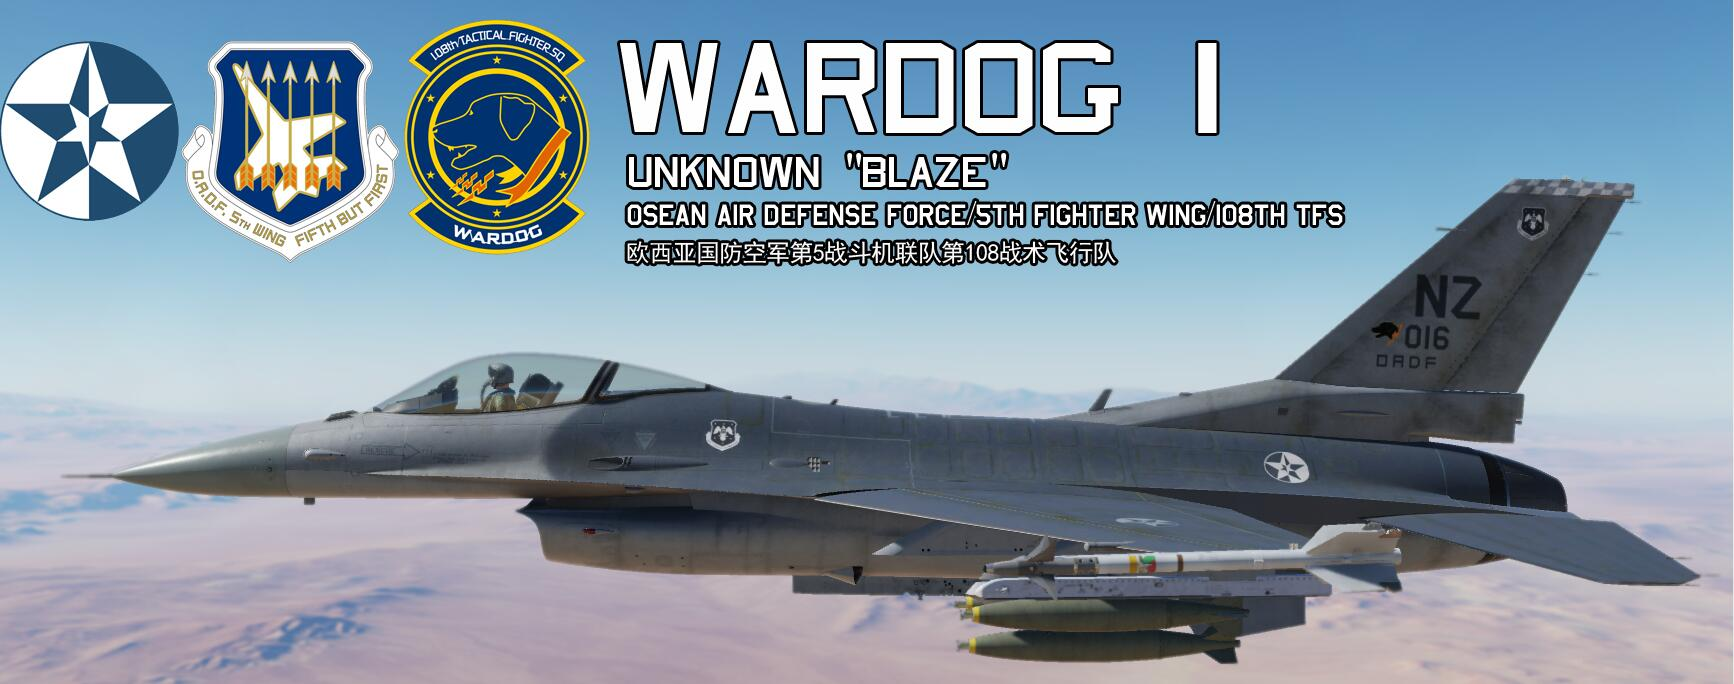 F-16C Osean Air Defense Force Wardog skin from Ace Combat 5